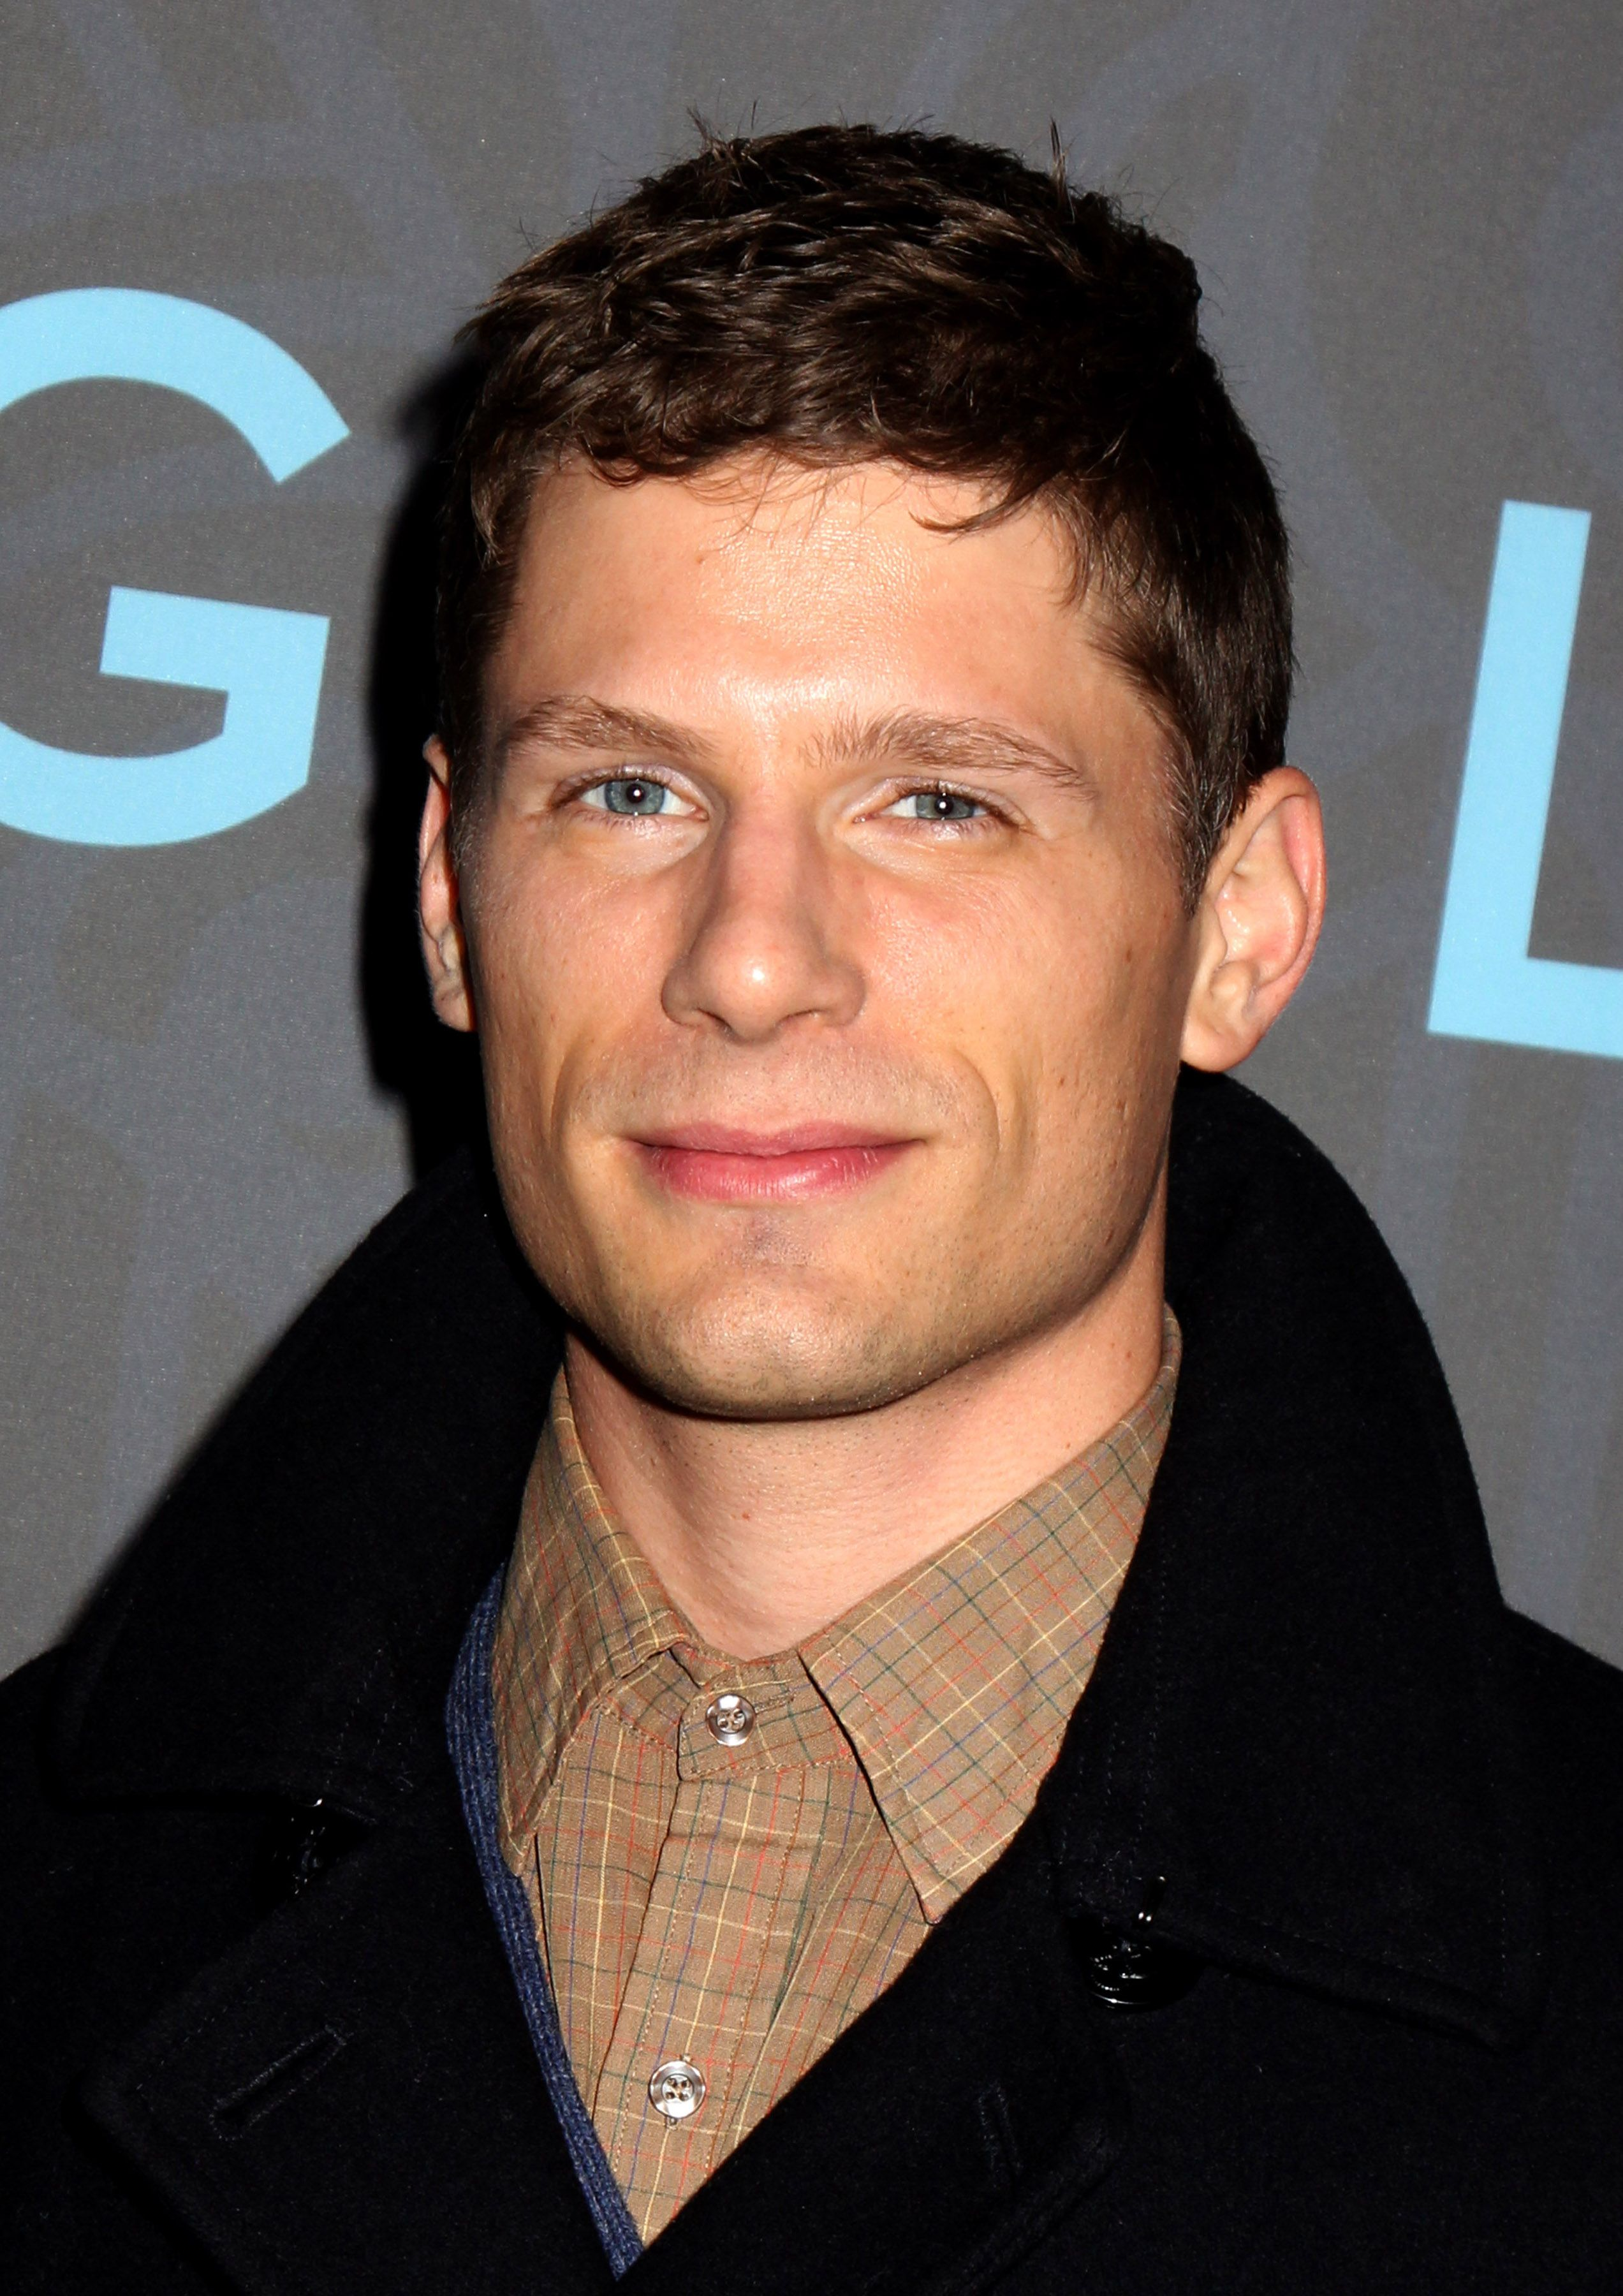 matt lauria shirtlessmatt lauria instagram, matt lauria ears, matt lauria wife, matt lauria vegan, matt lauria training, matt lauria, matt lauria michelle armstrong, matt lauria kingdom, matt lauria workout, matt lauria height, matt lauria wiki, matt lauria twitter, matt lauria tattoos, matt lauria bio, matt lauria mae whitman, matt lauria height weight, matt lauria larry, matt lauria parenthood, matt lauria imdb, matt lauria shirtless